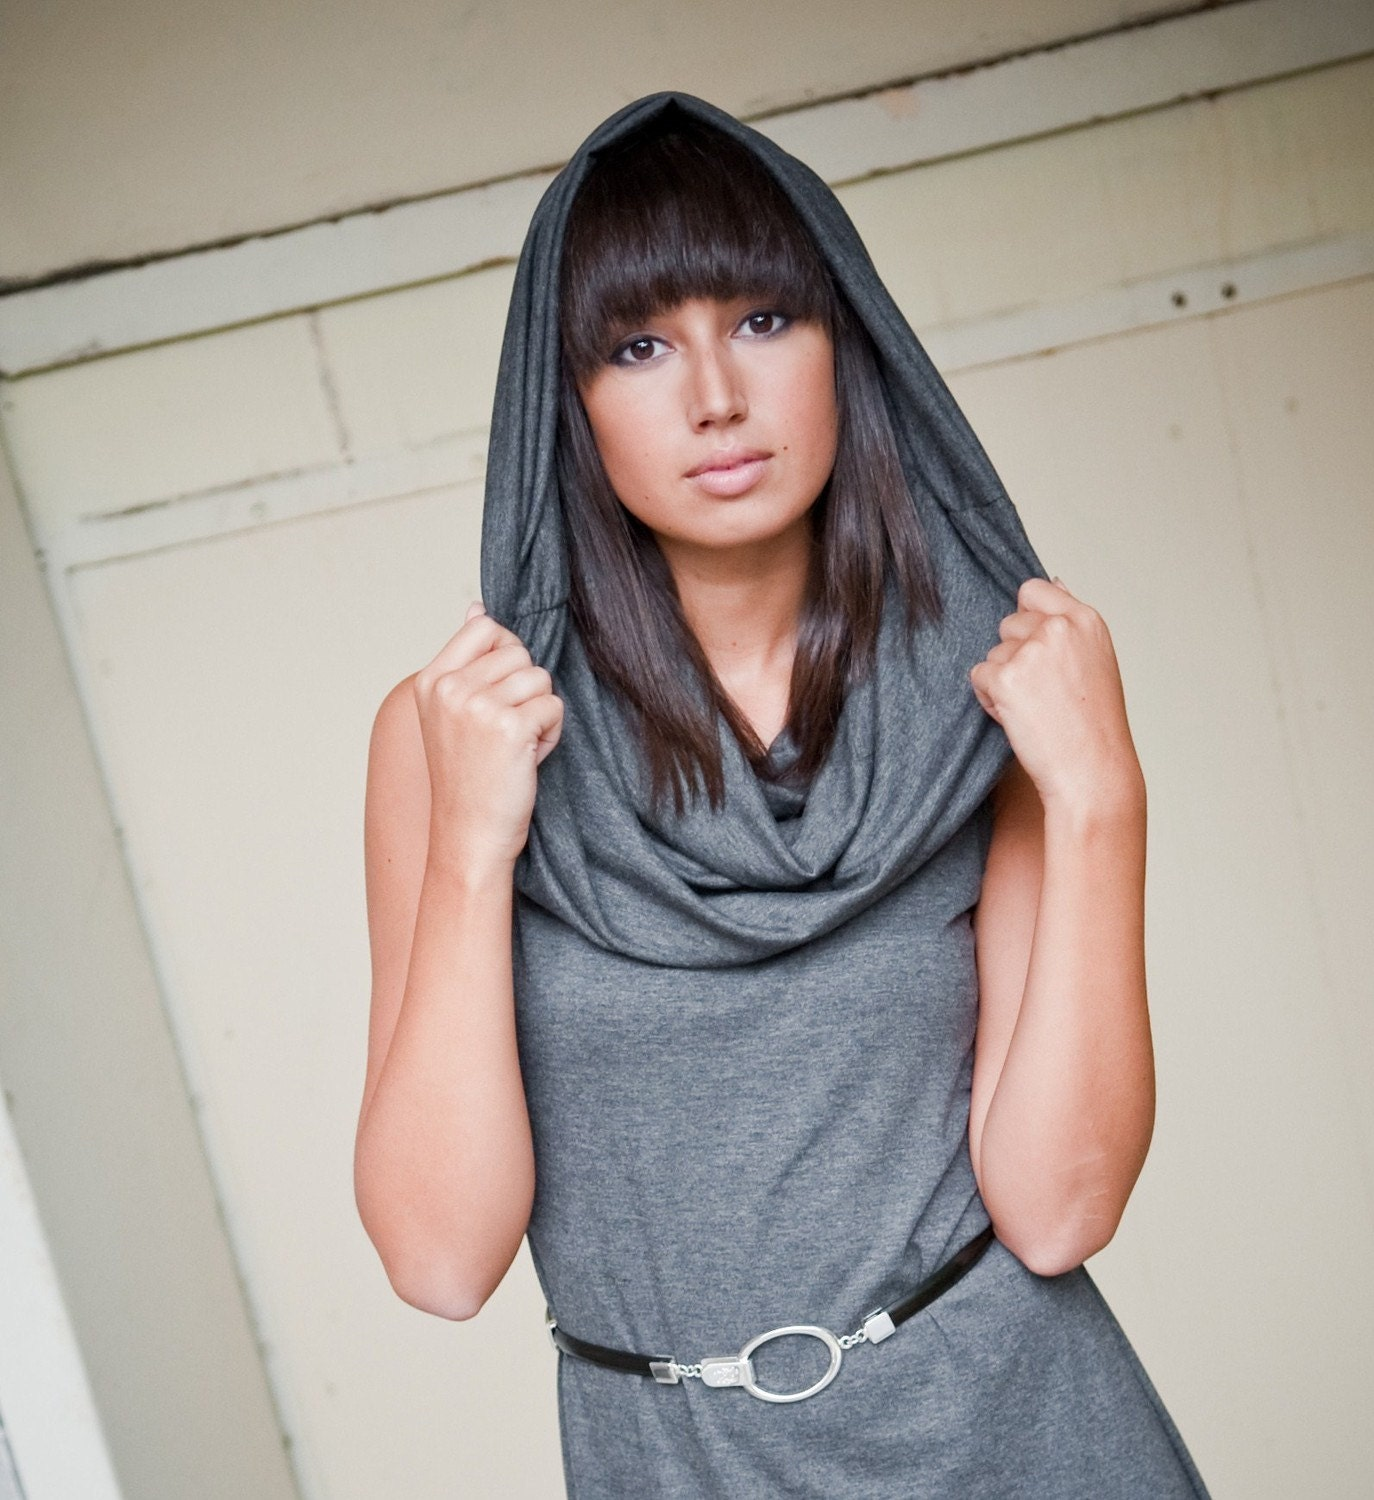 Chelsey sleeveless cowl jersey dress in gray - fall fashion women's clothing - custom made - tangente